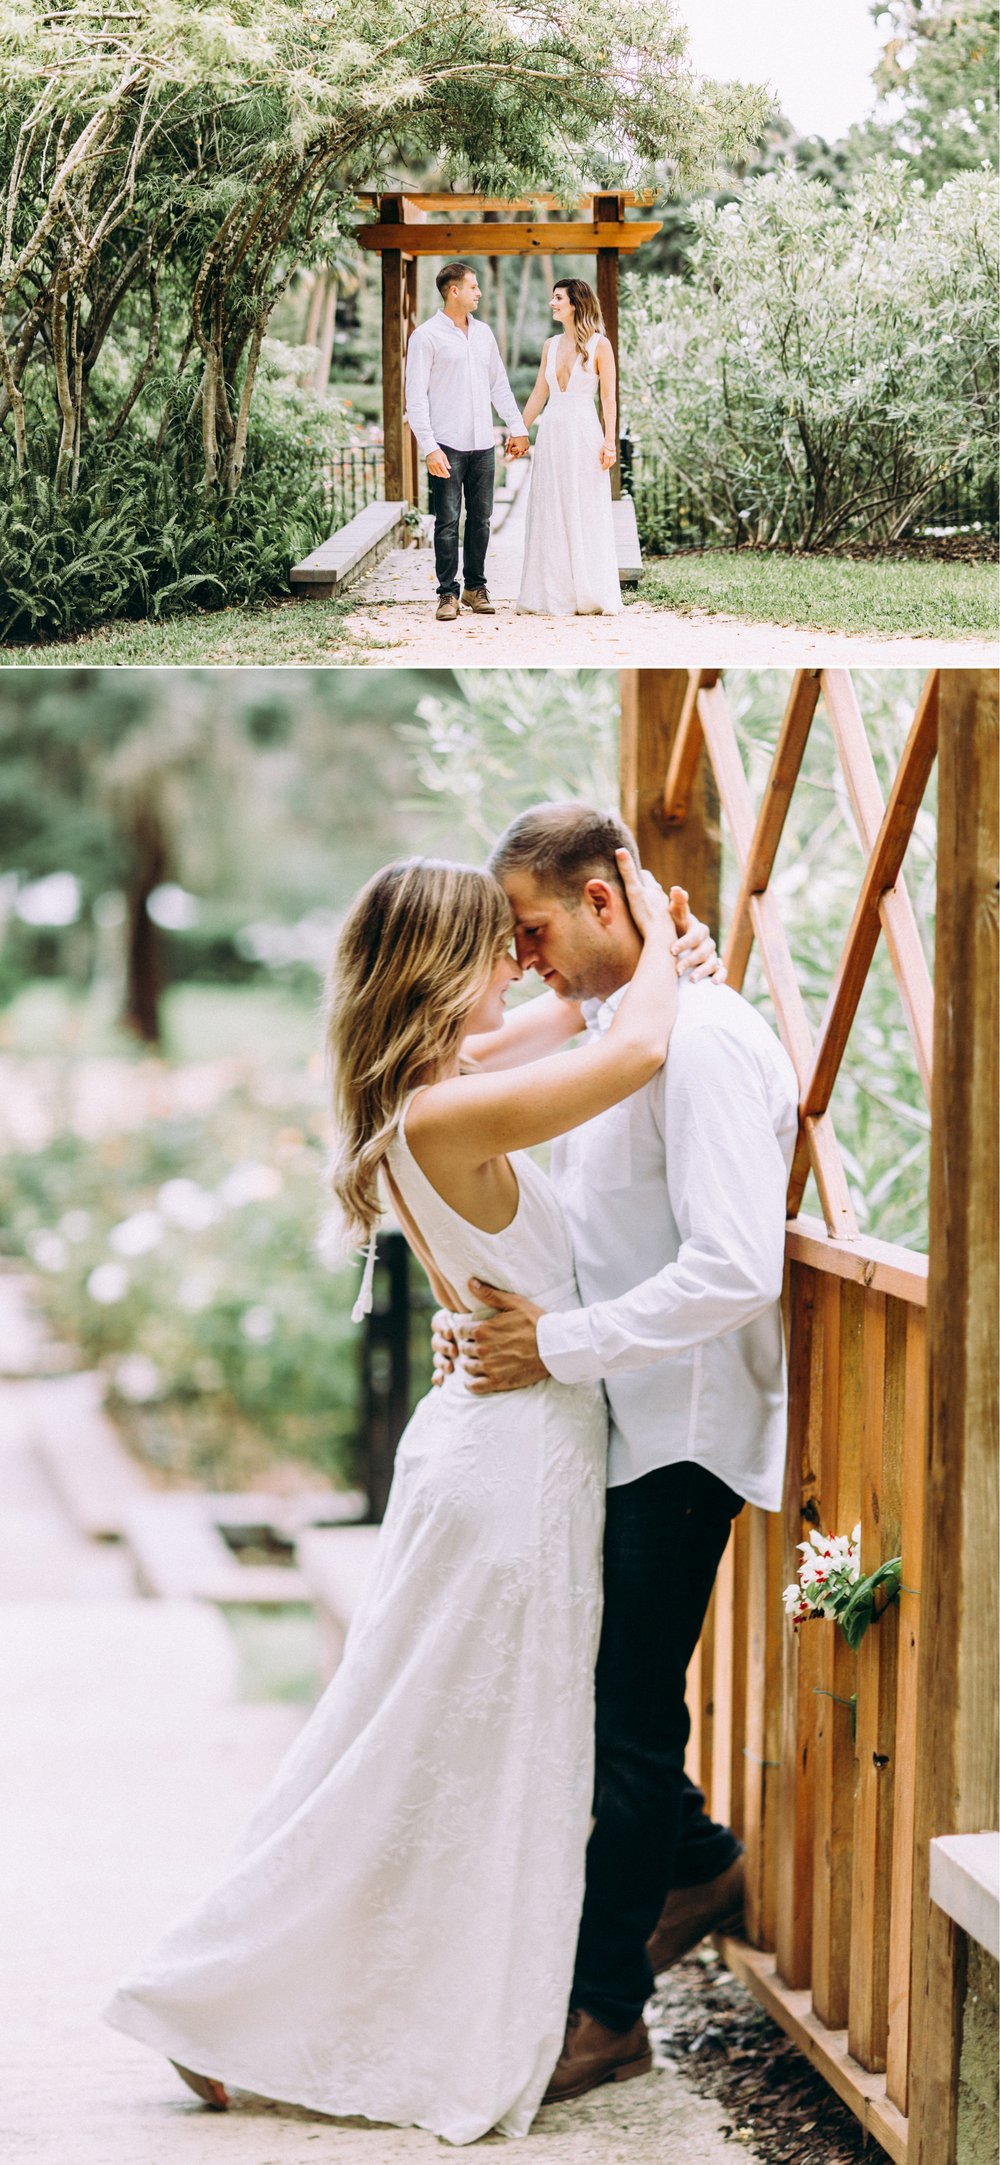 Bohemian Chic engagement photos in a wooden gazebo, styled with a white maxi dress, brown shoes, and neutral toned outfits at the Washington Oaks Garden State Park.